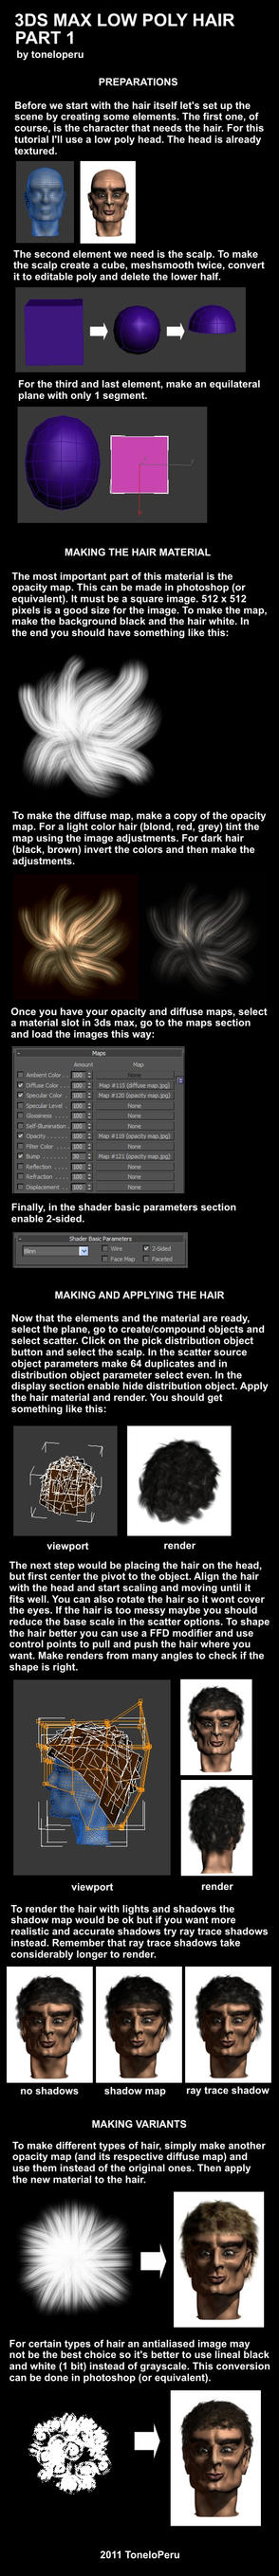 Low poly hair tutorial pt 1 by toneloperu